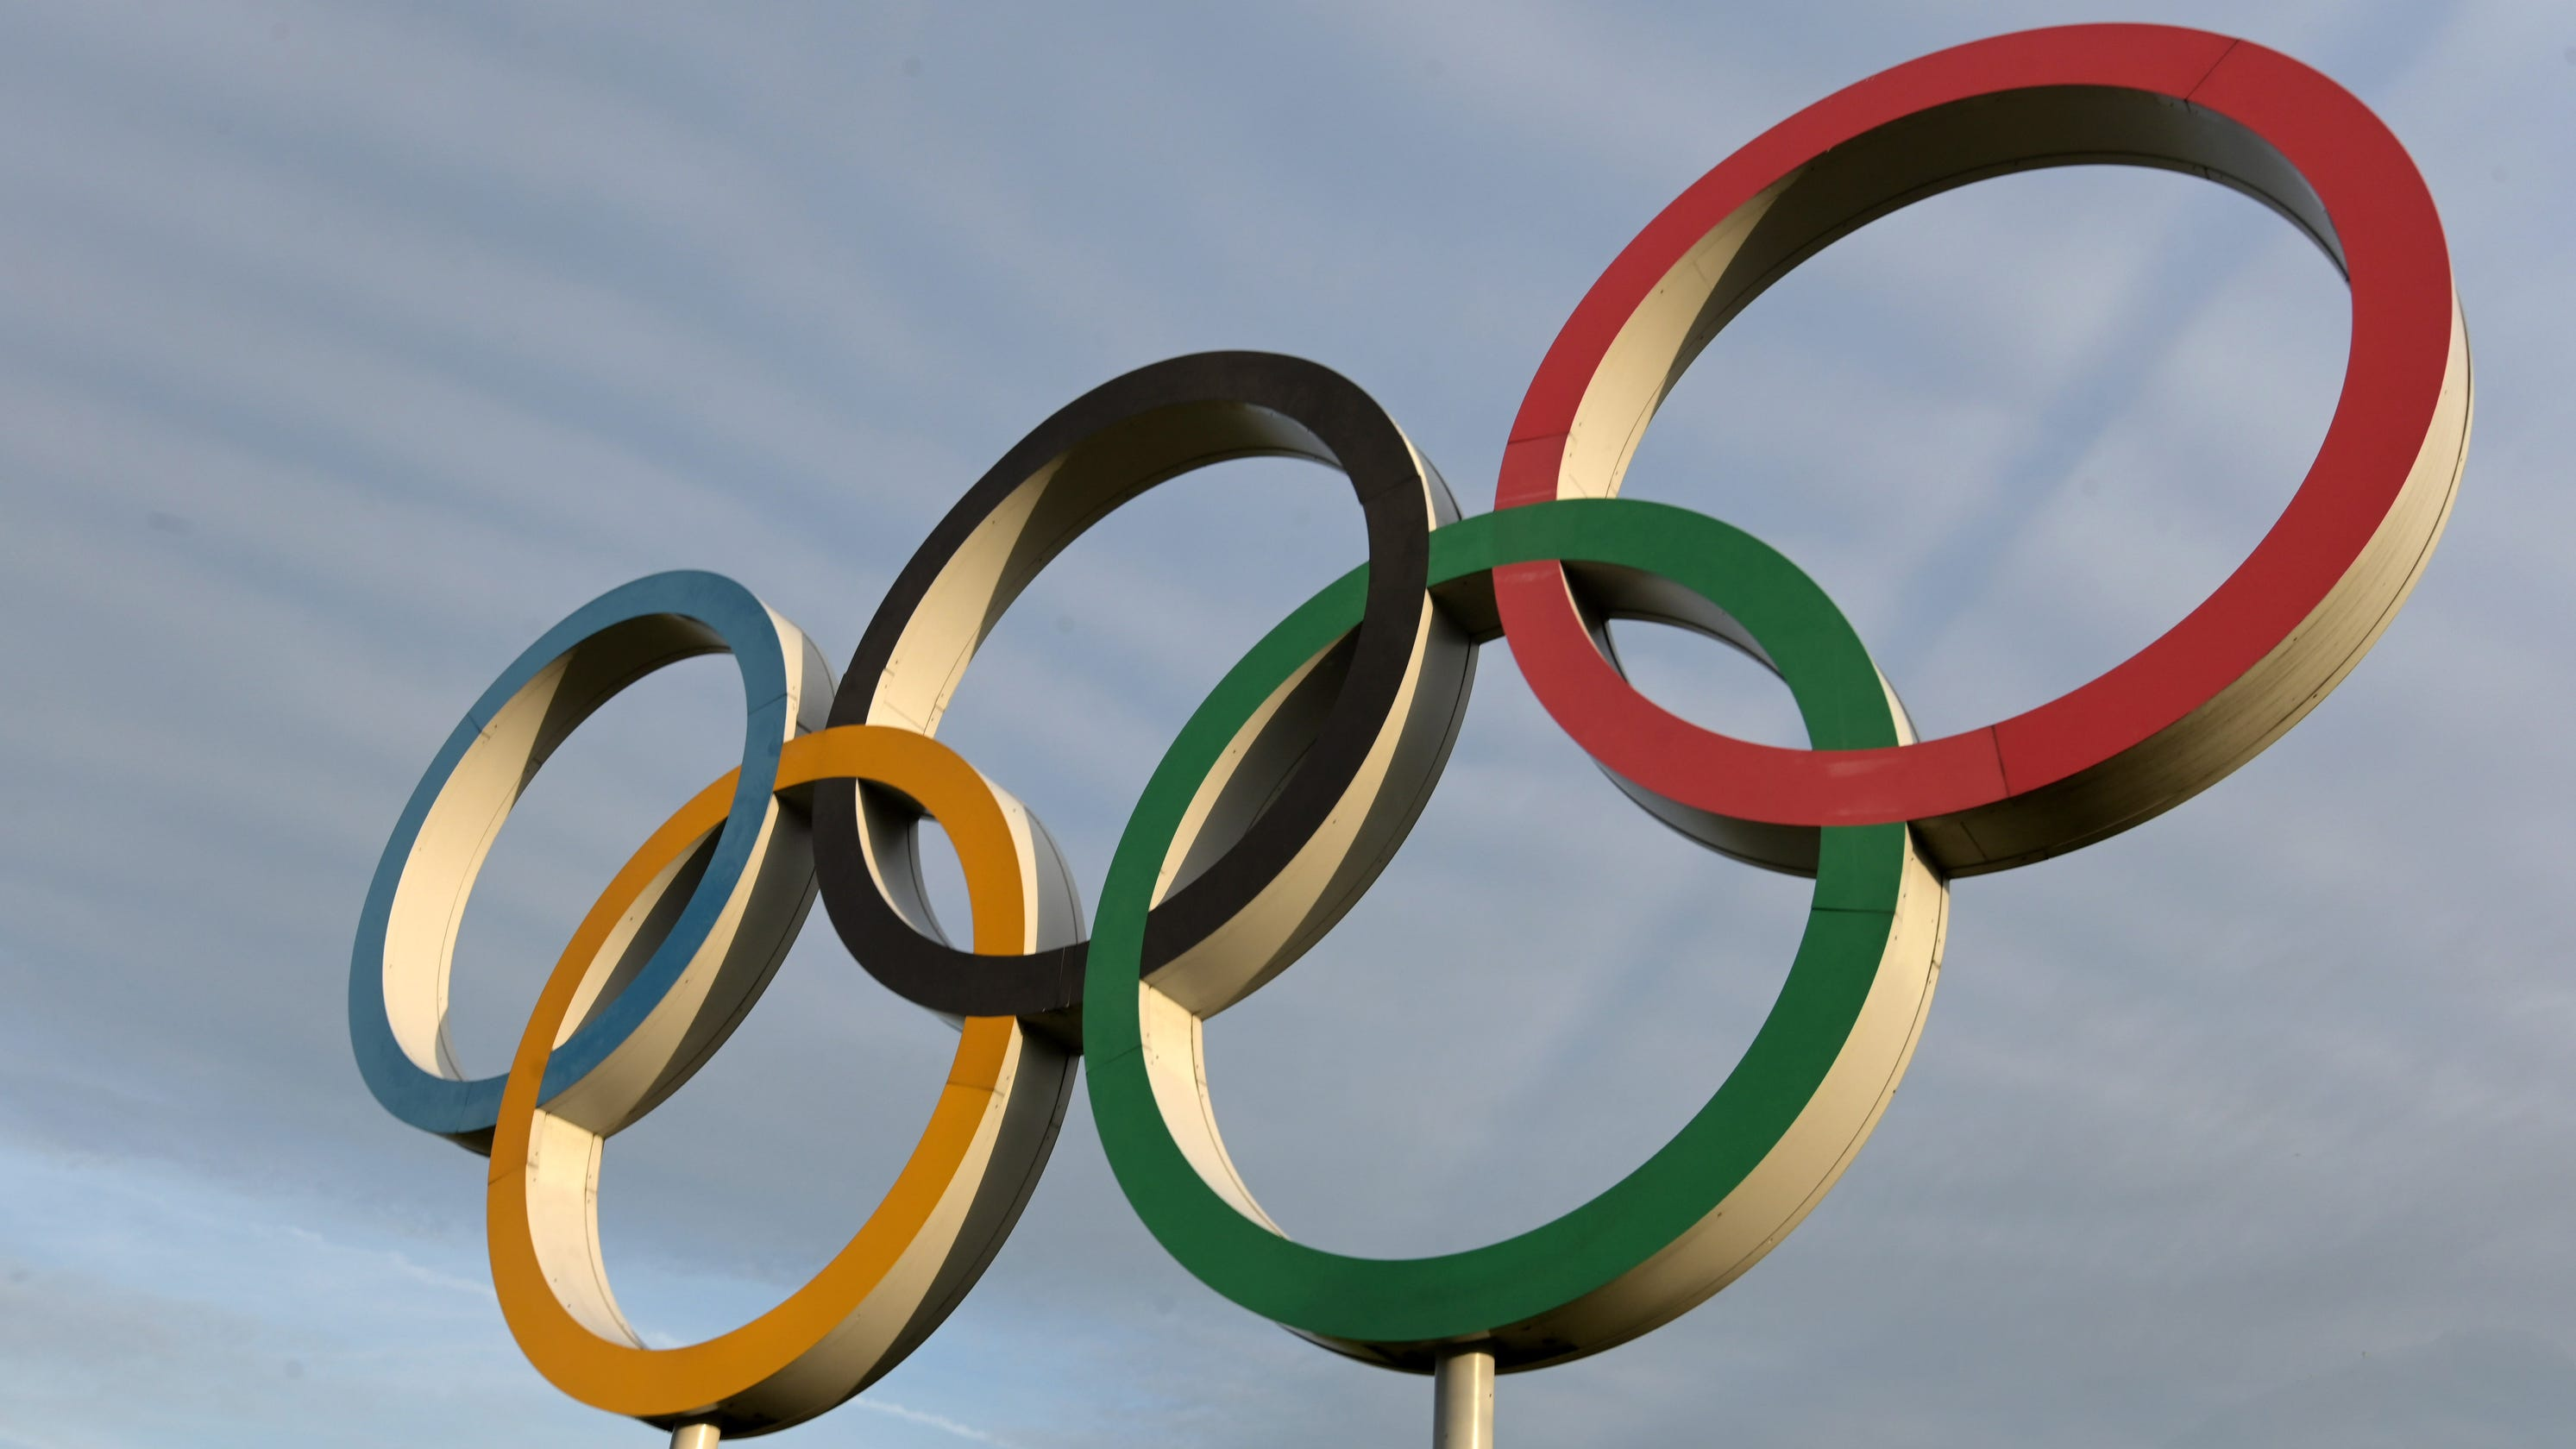 Olympic, Paralympic athletes call on IOC to change anti-protest policy